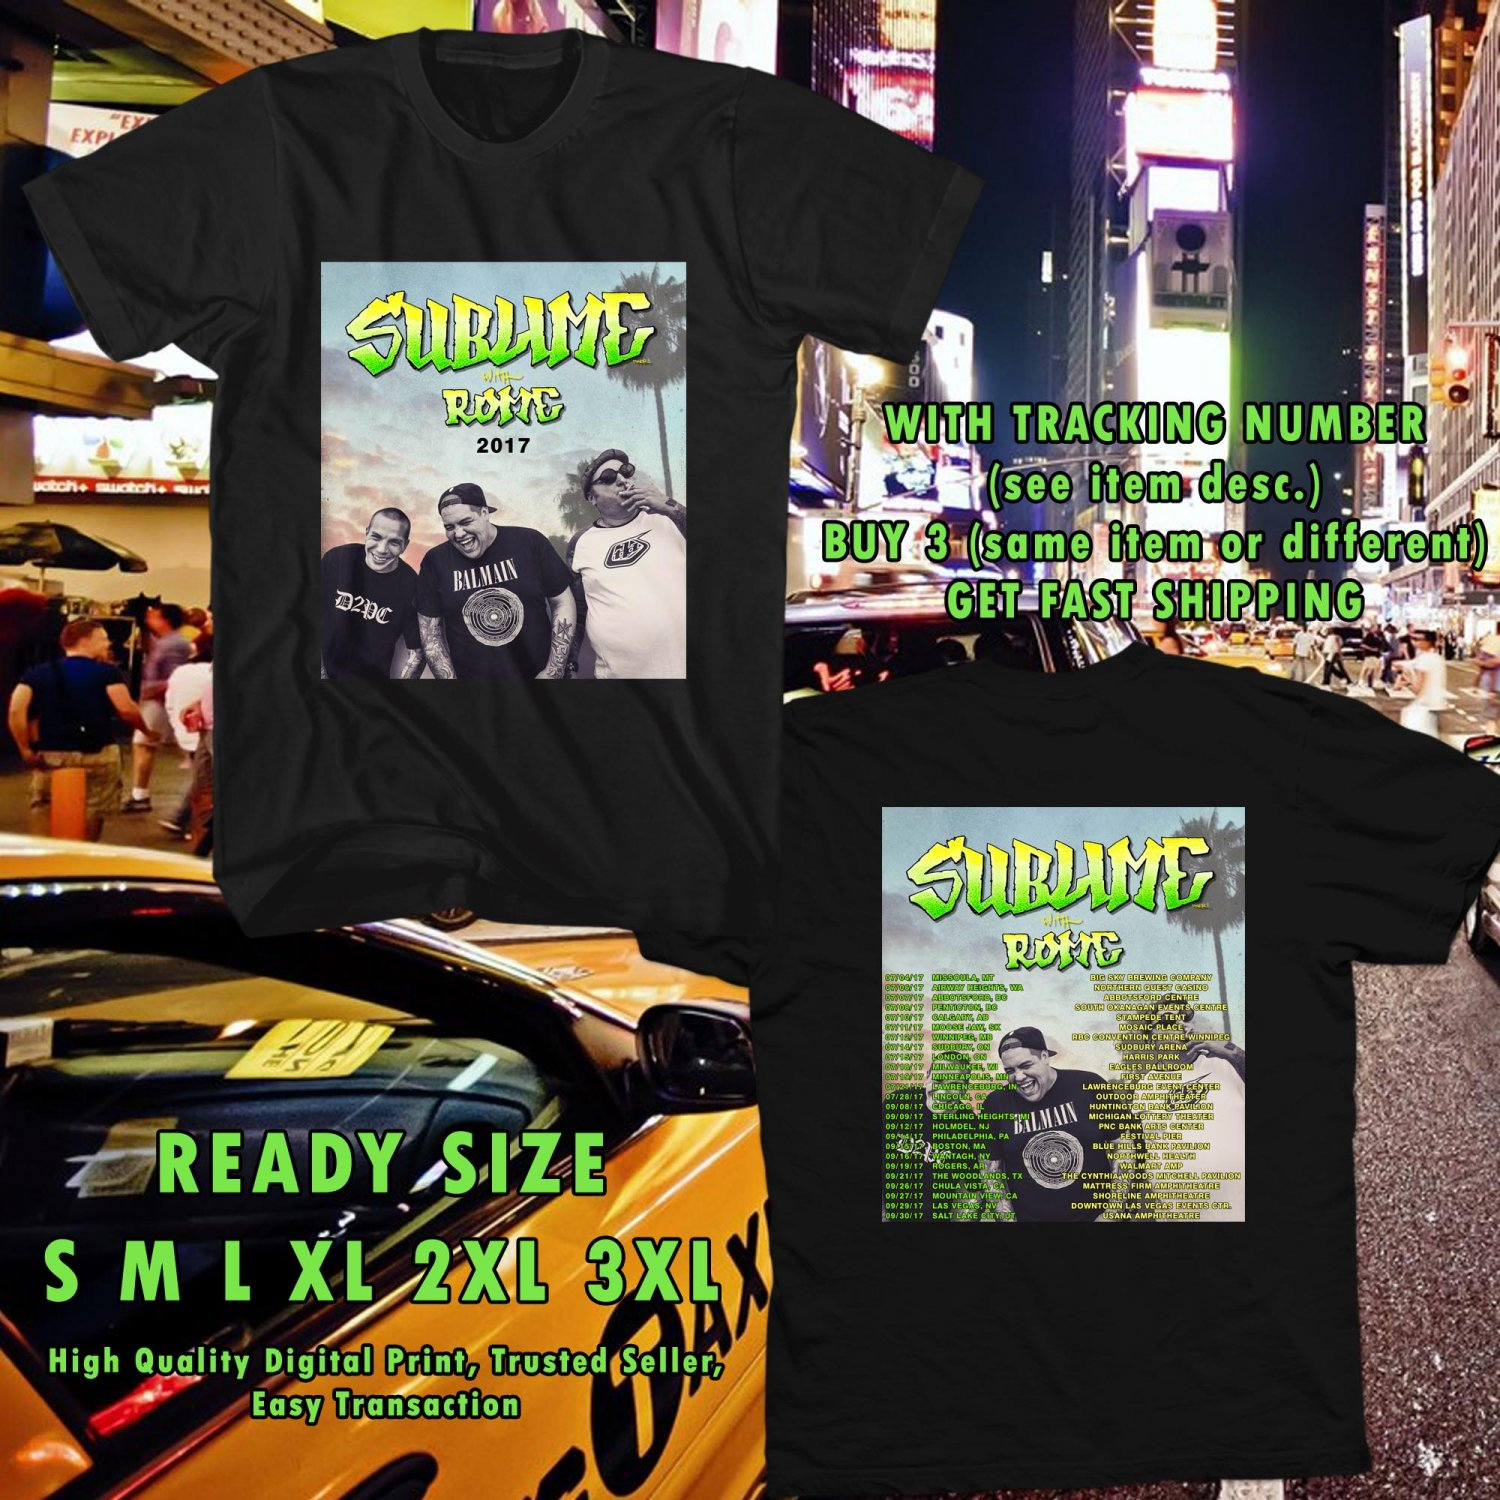 HITS SUBLIME WITH ROME N.AMERICA TOUR 2017 BLACK TEE'S 2SIDE MAN WOMEN ASTR